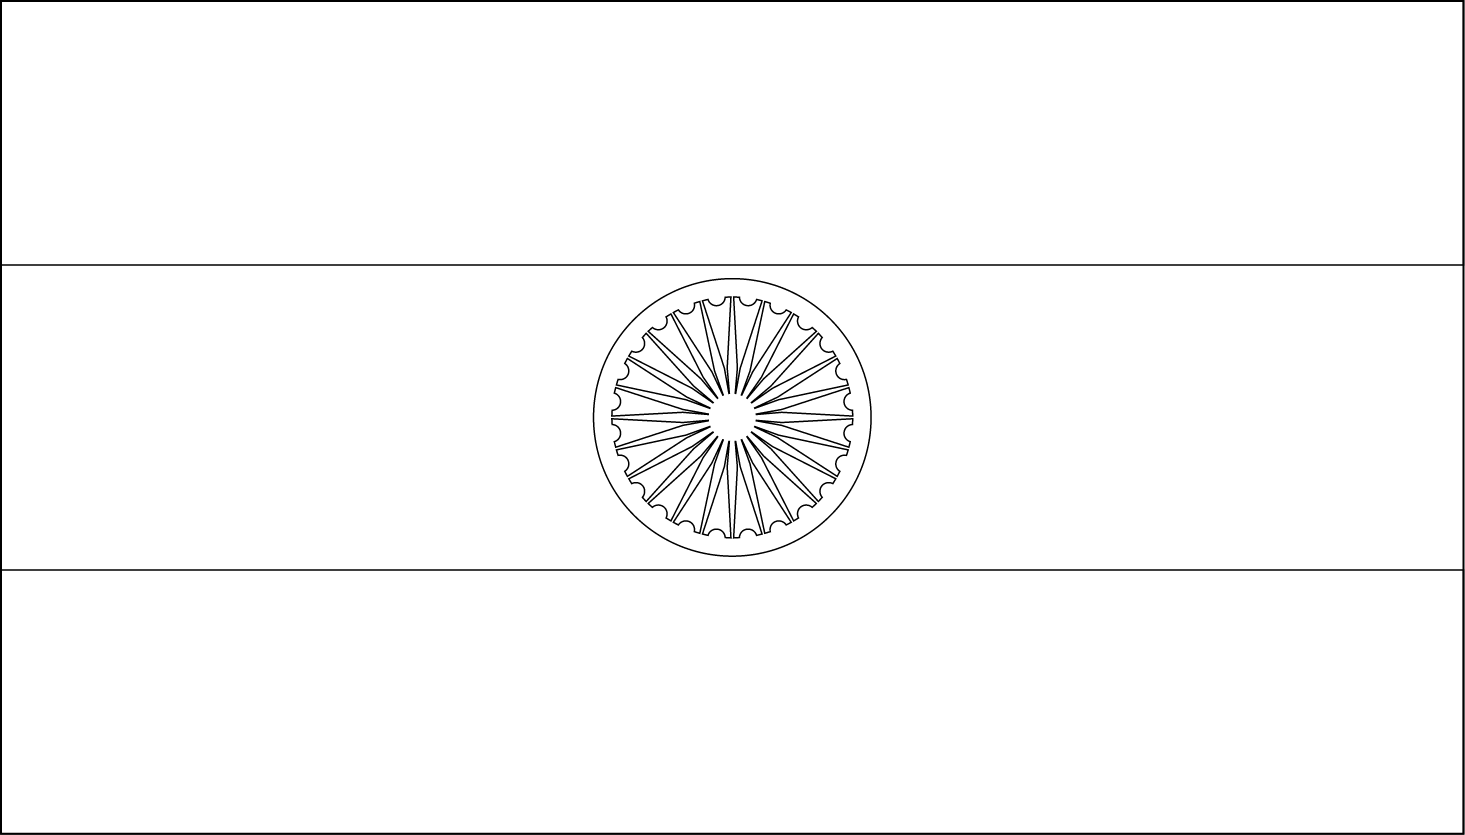 Coloring Pages Indian Flag Coloring Page india flag coloring page az pages printable page